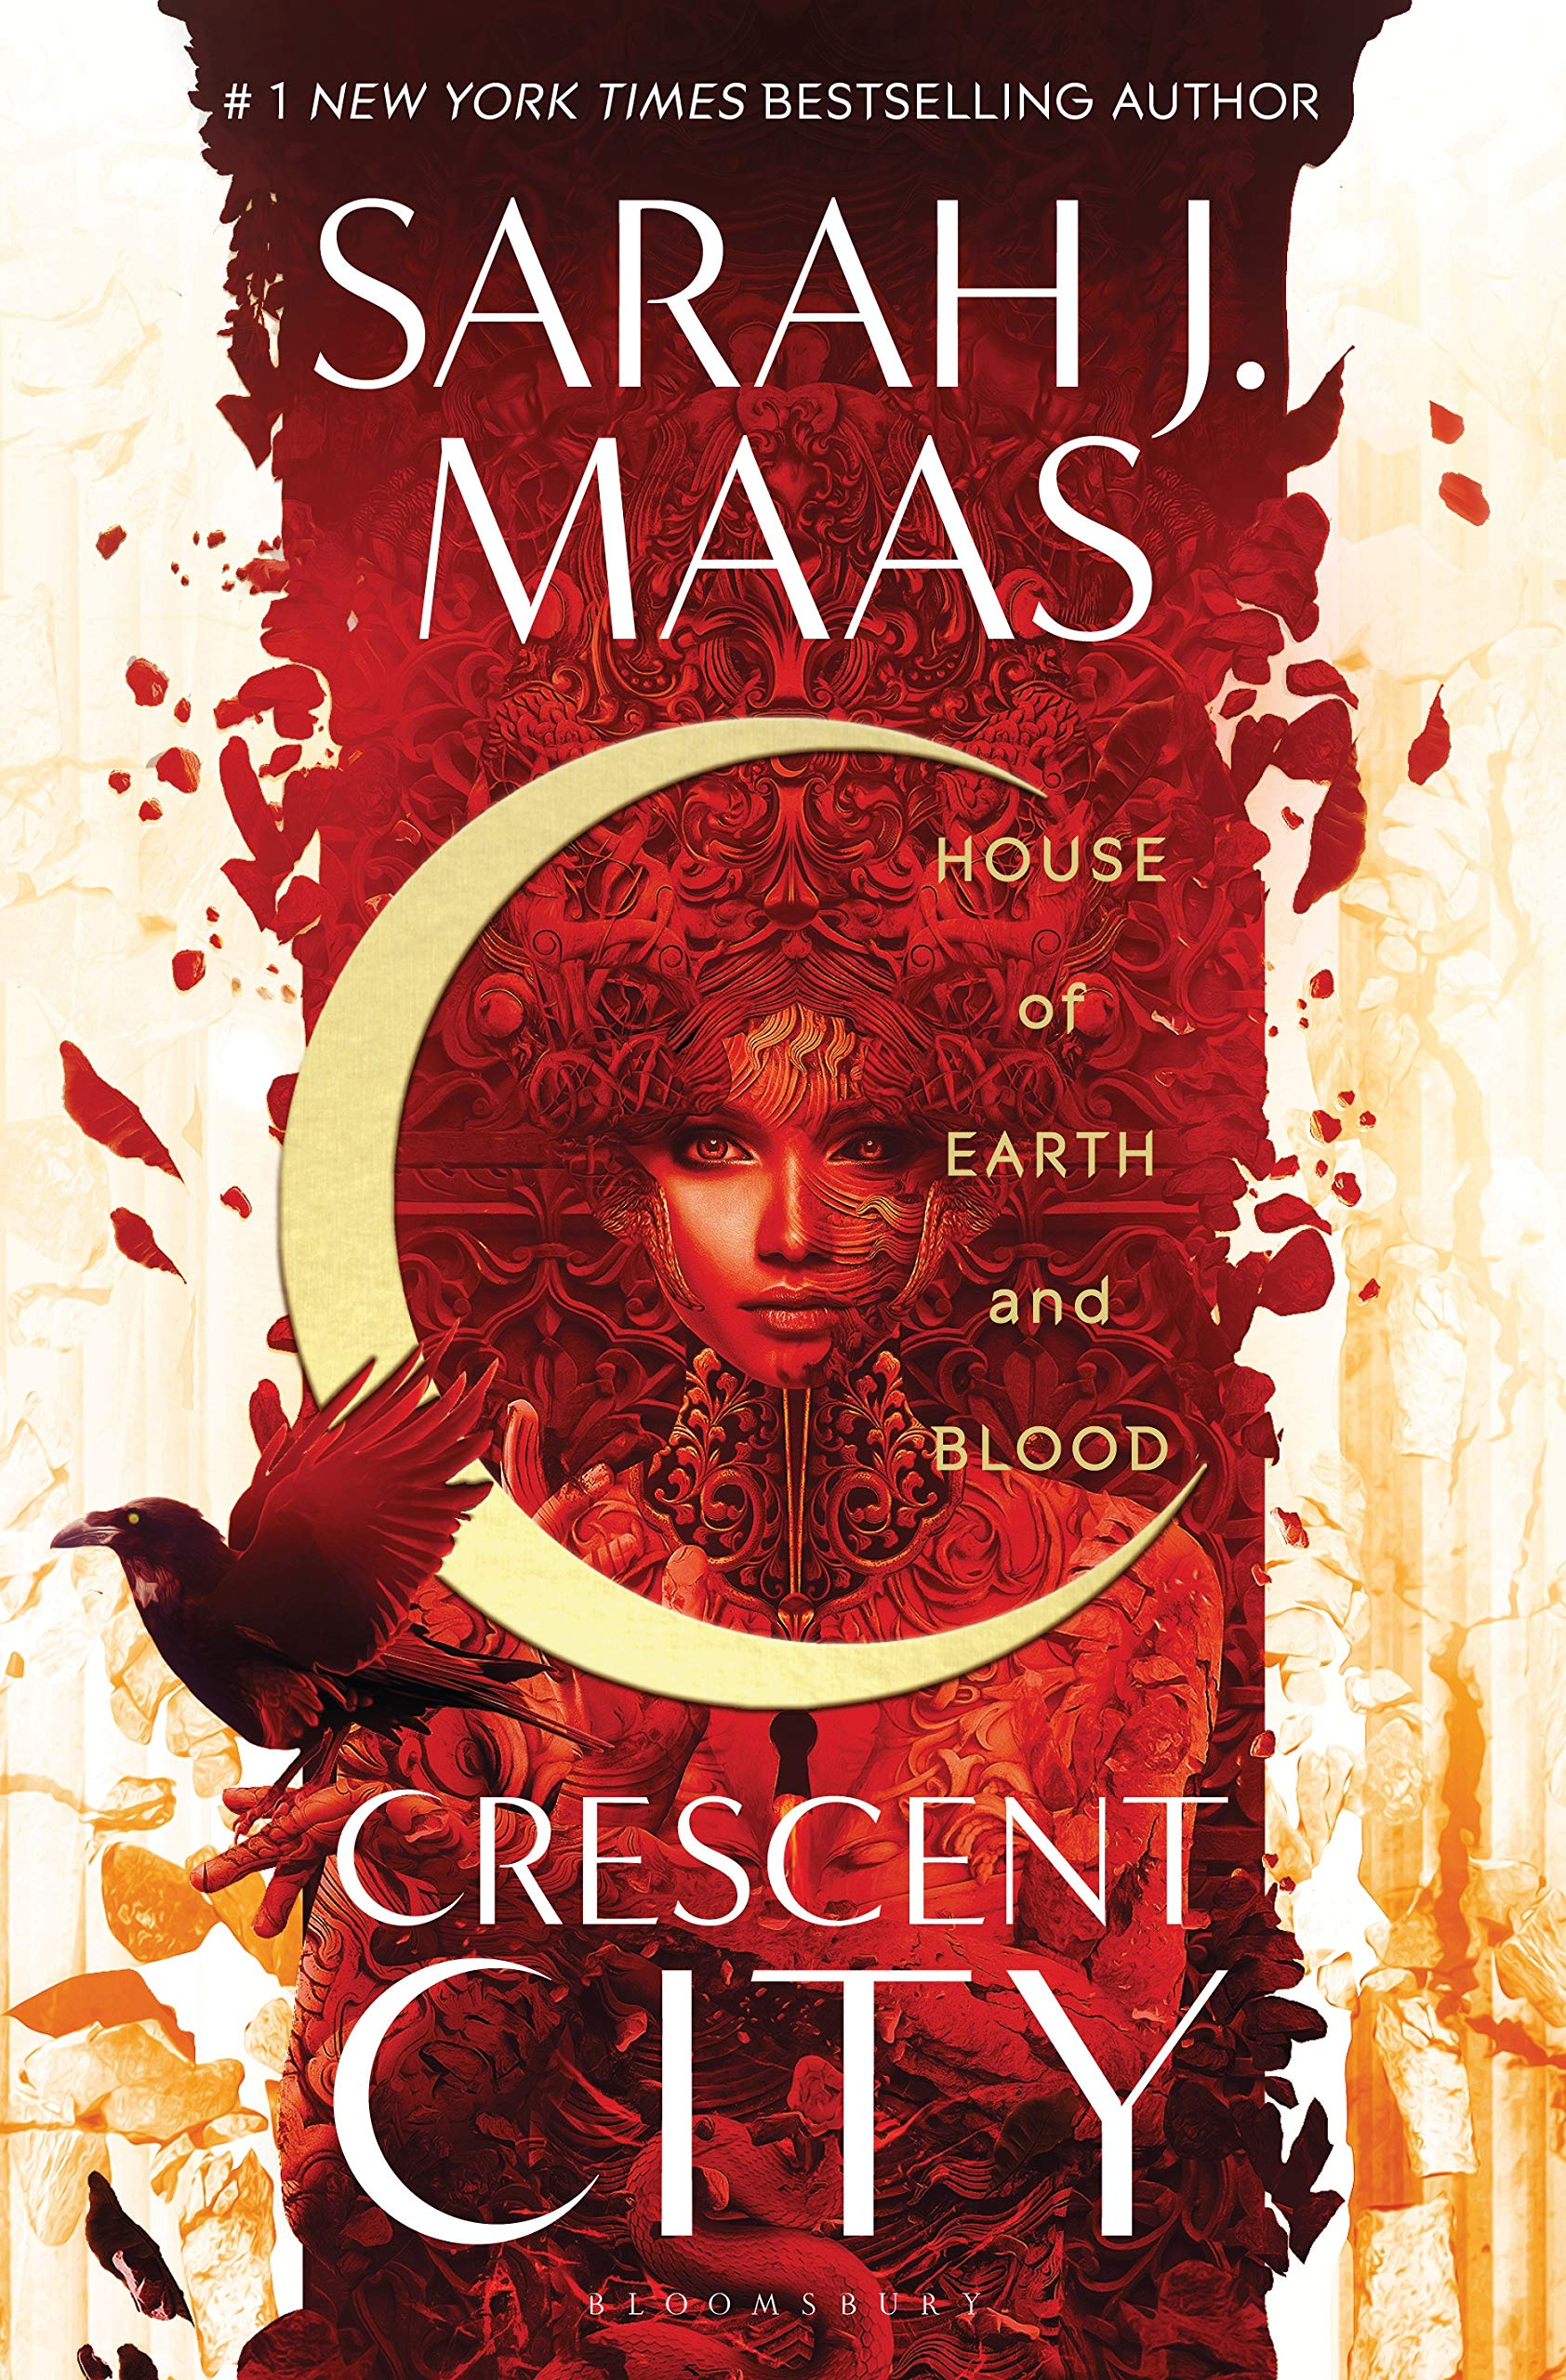 House of Earth and Blood: Crescent City by Sarah J. Maas